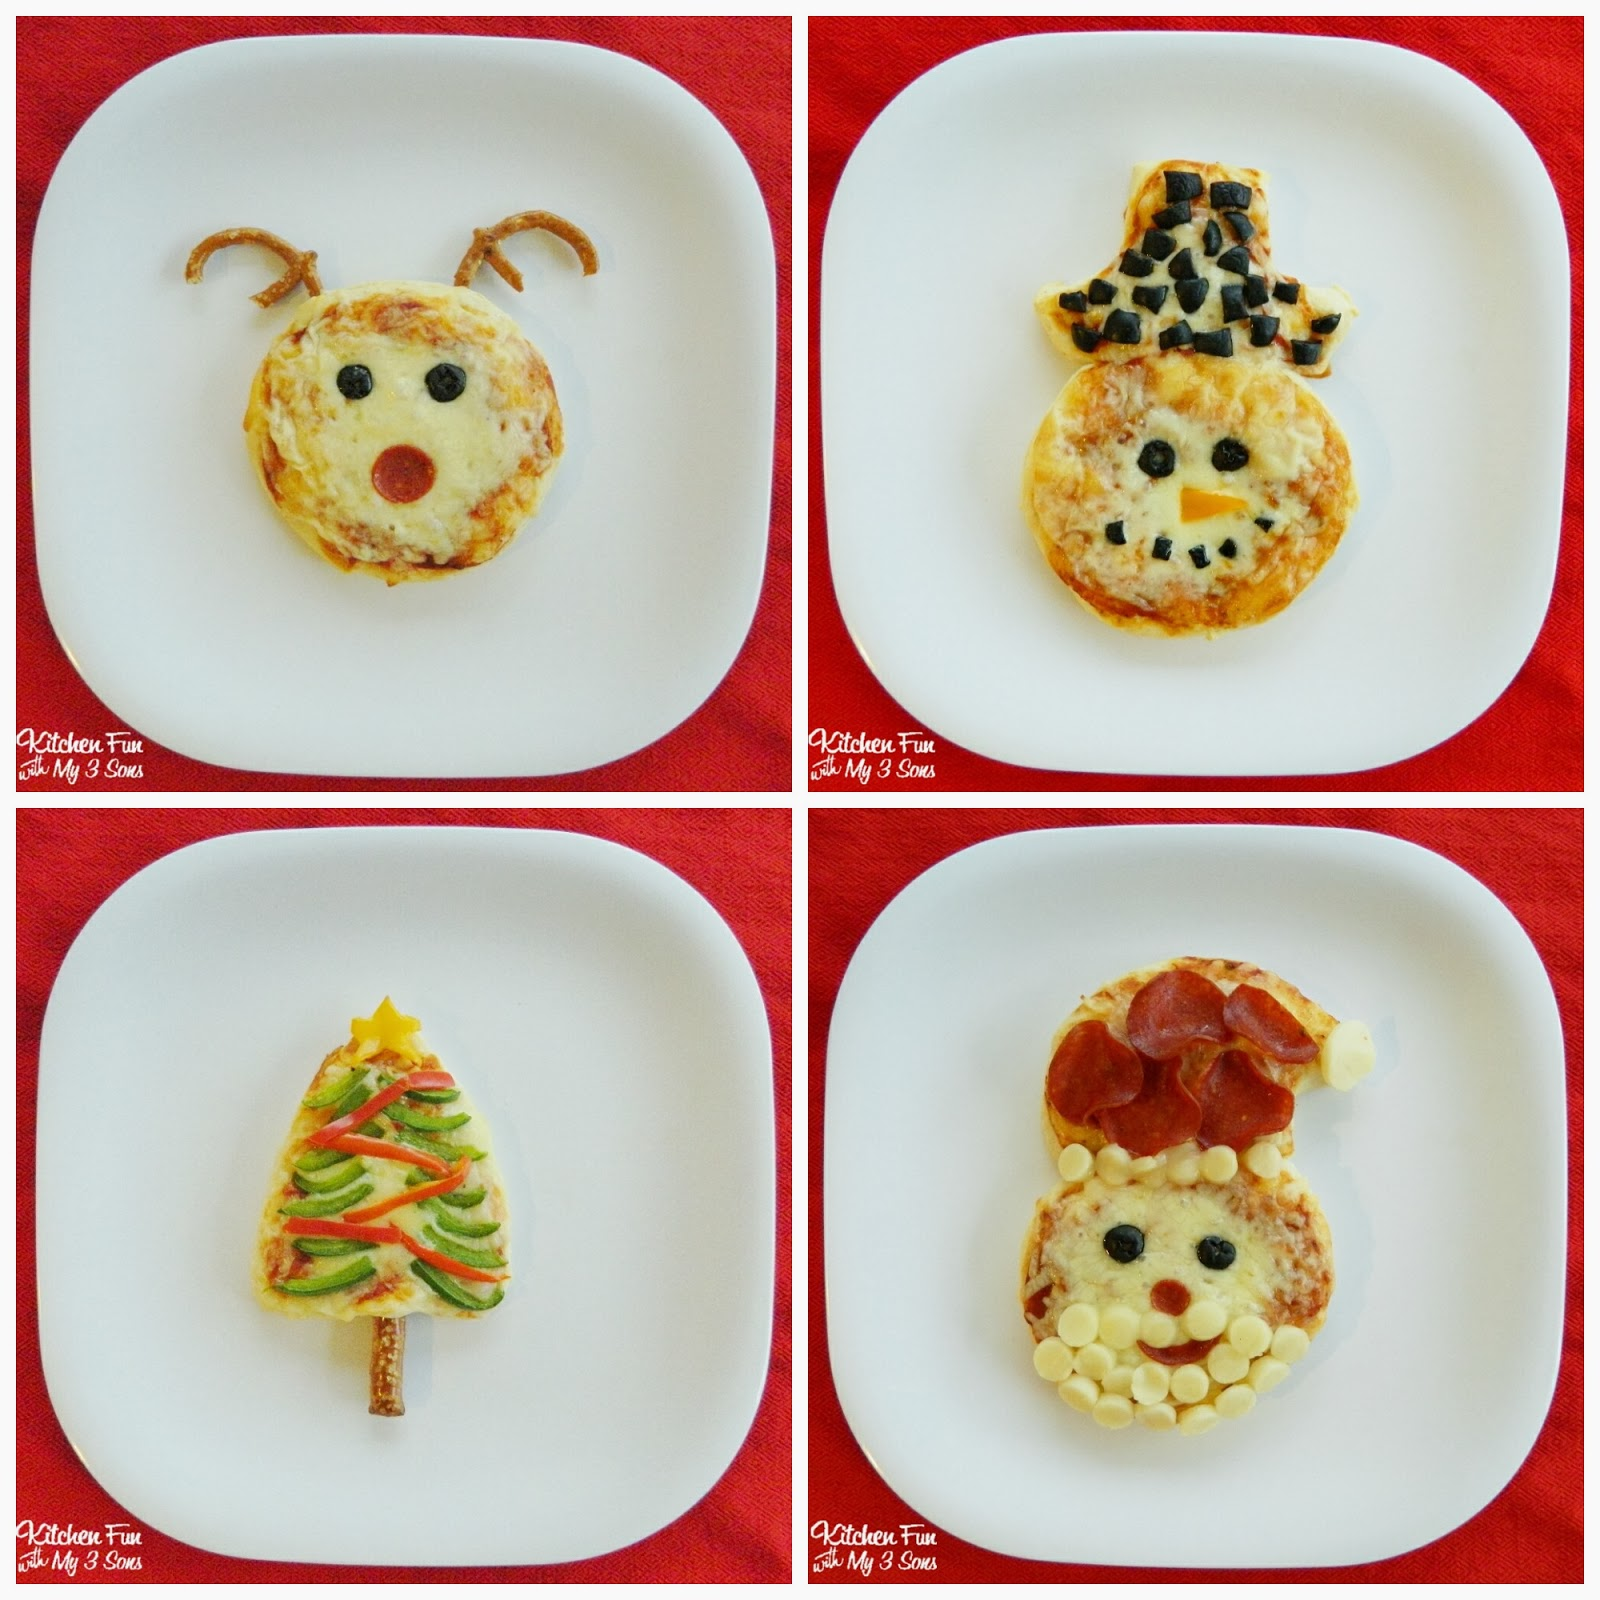 Christmas Biscuit Pizza Ideas Kitchen Fun With My 3 Sons